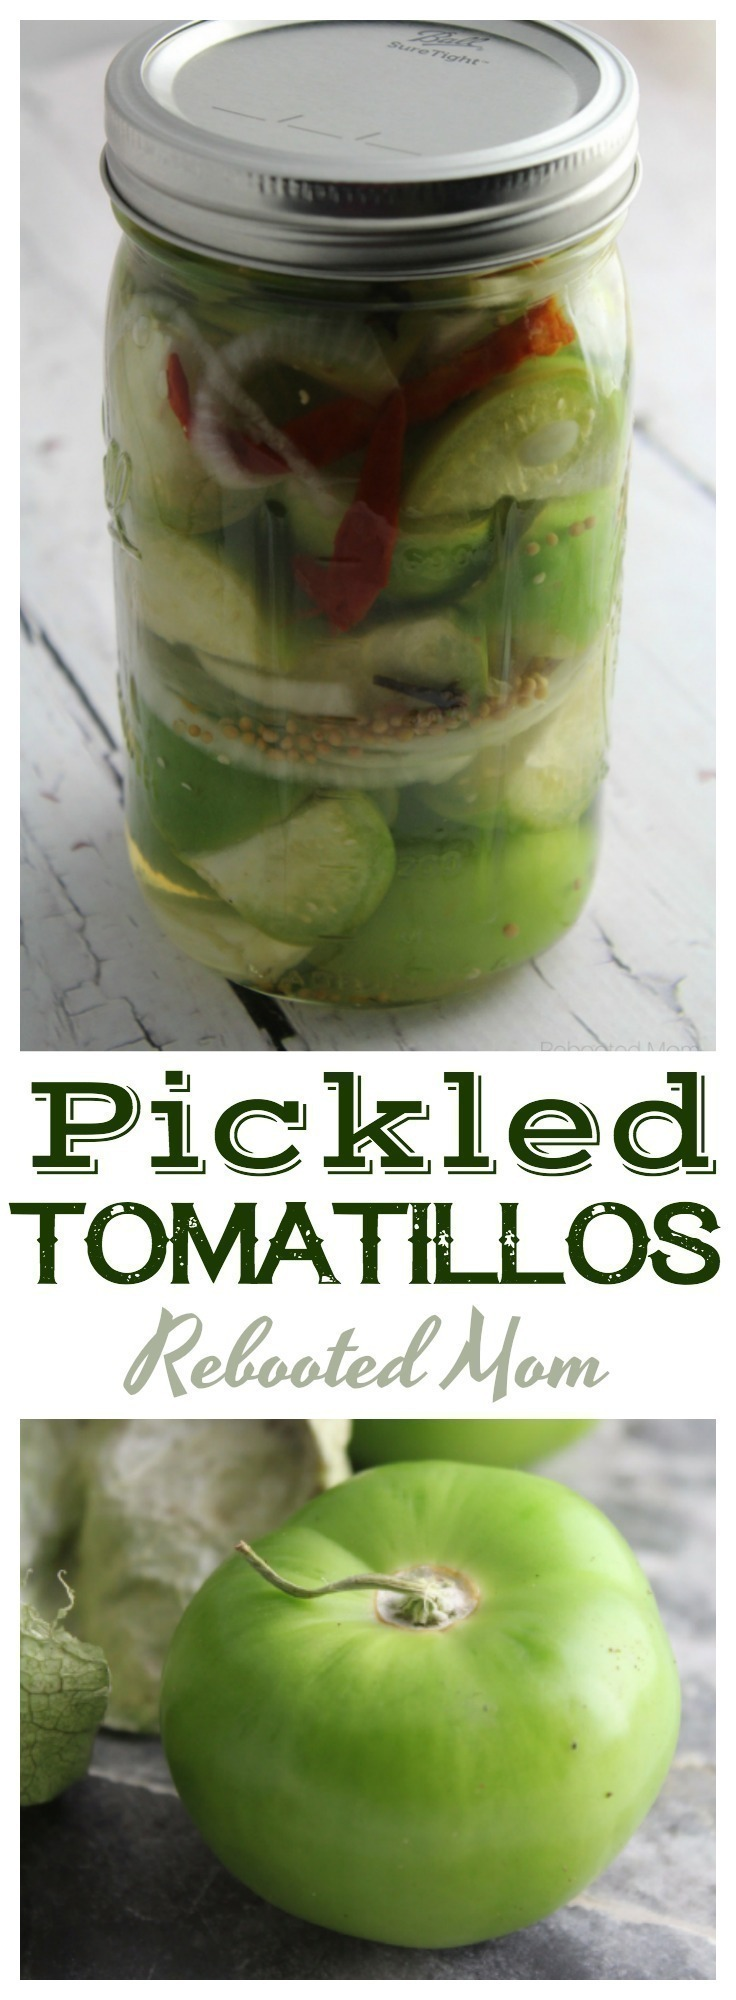 A flavorful brine makes these pickled tomatillos incredibly delicious as a healthy, pickled condiment that can be used in so many ways!